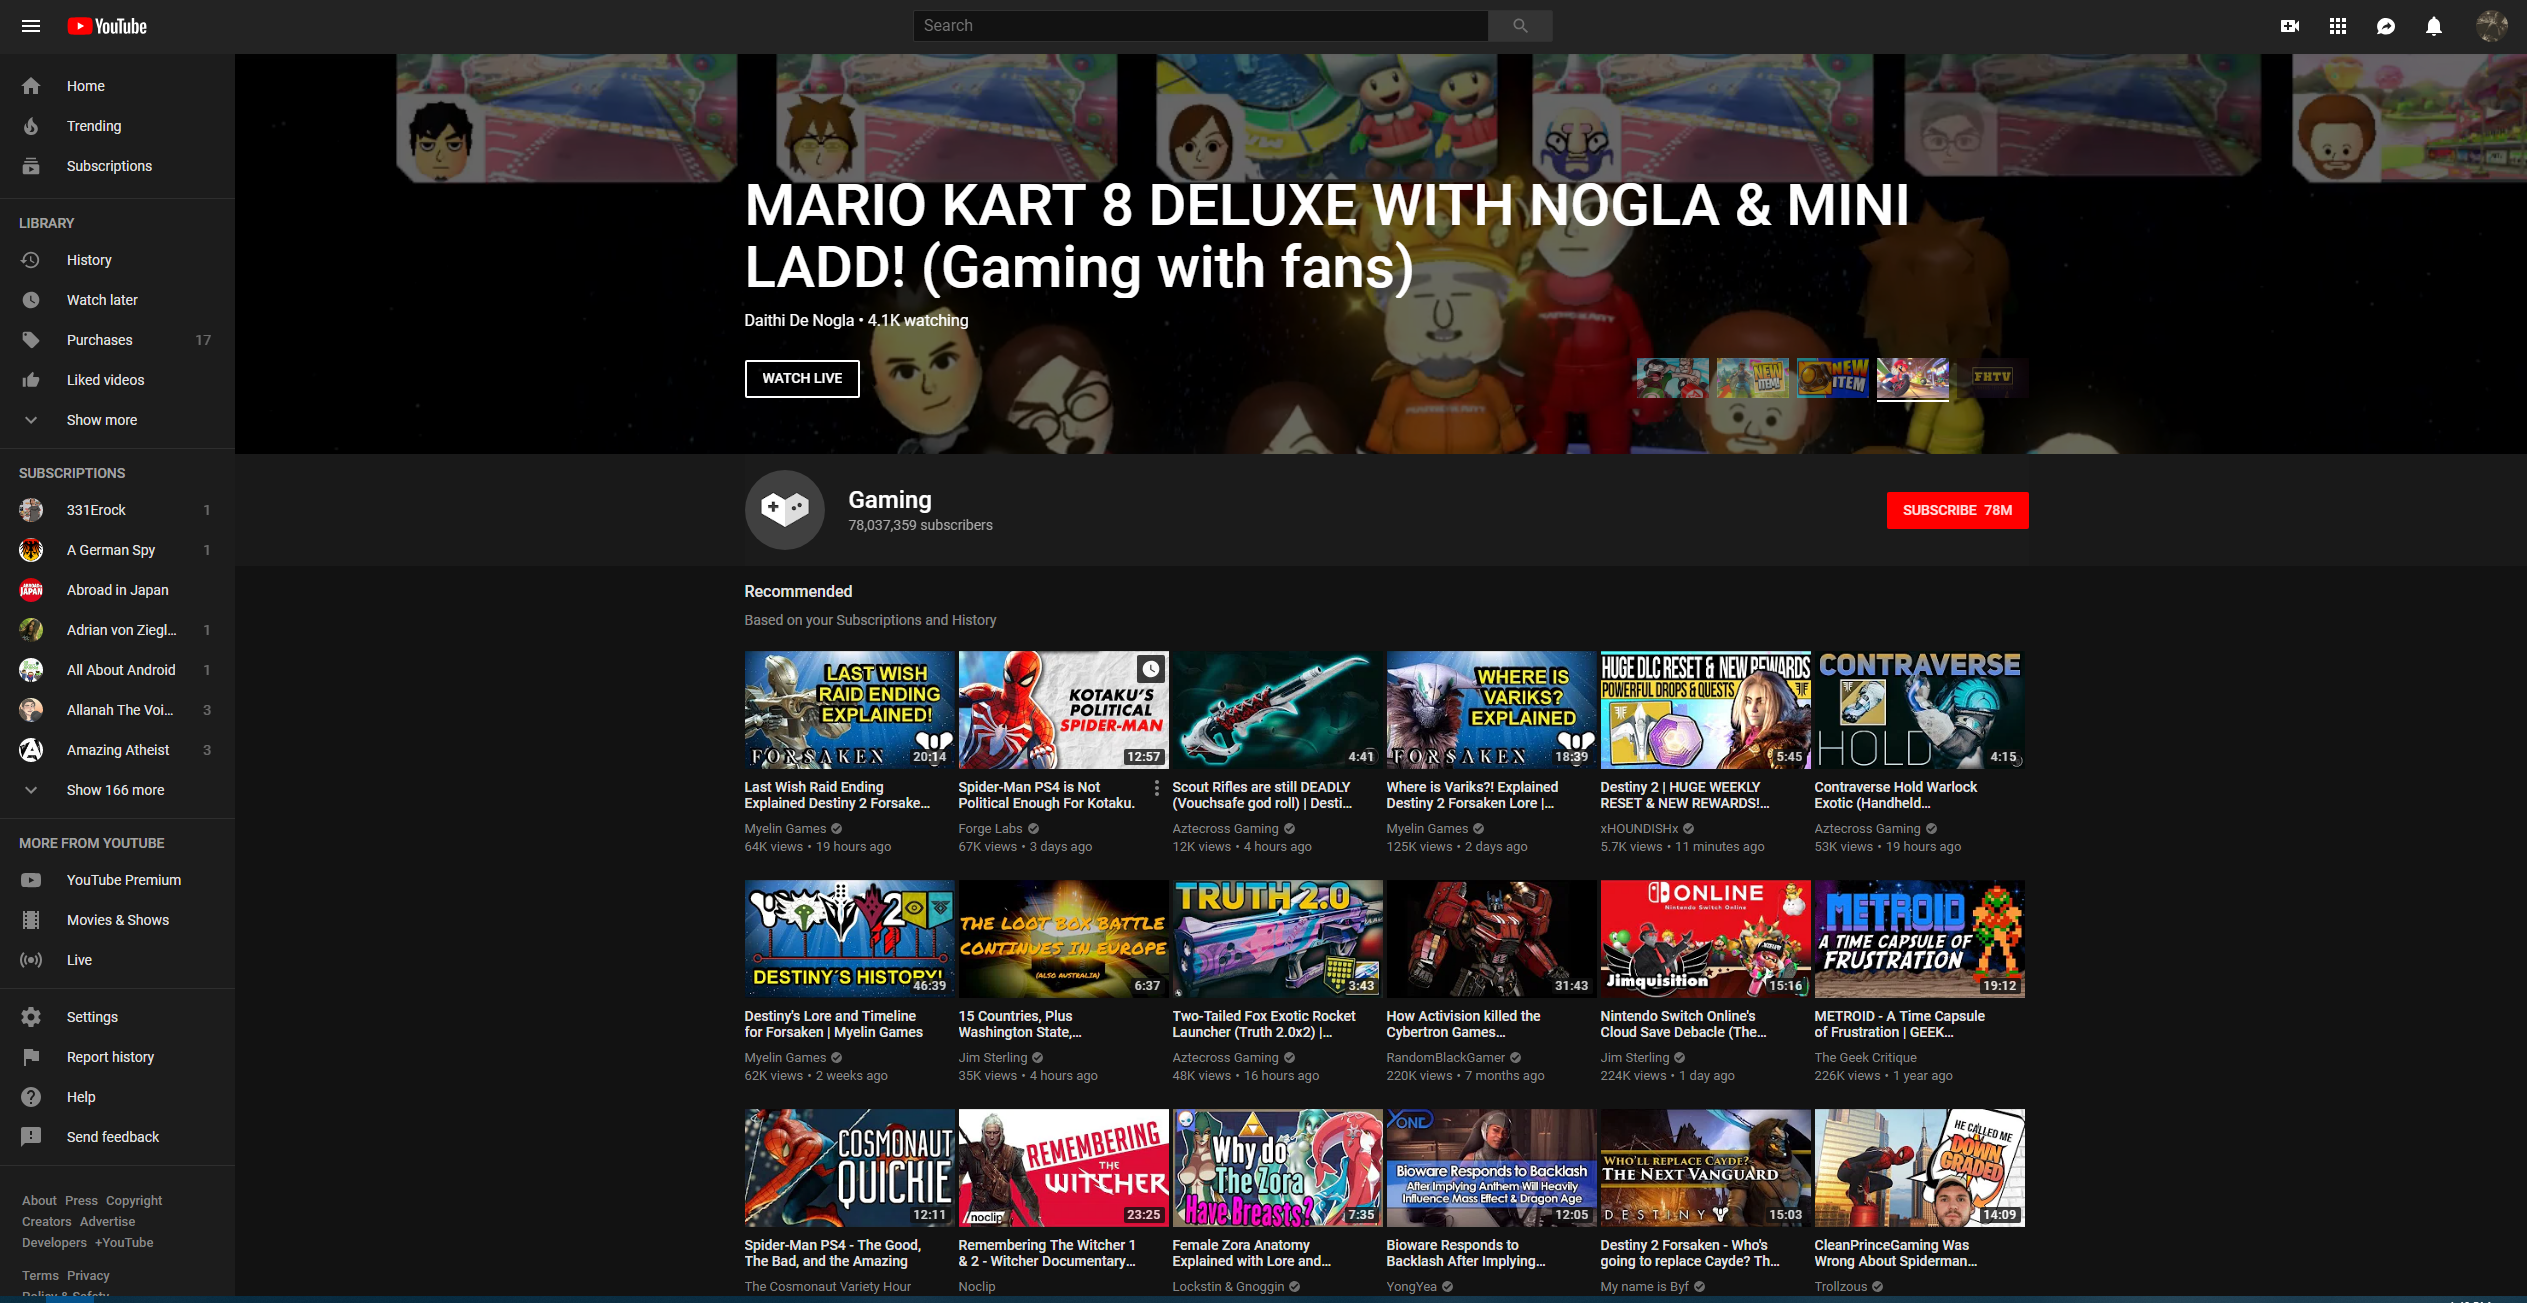 YouTube announces retirement of its dedicated Gaming app - Internet